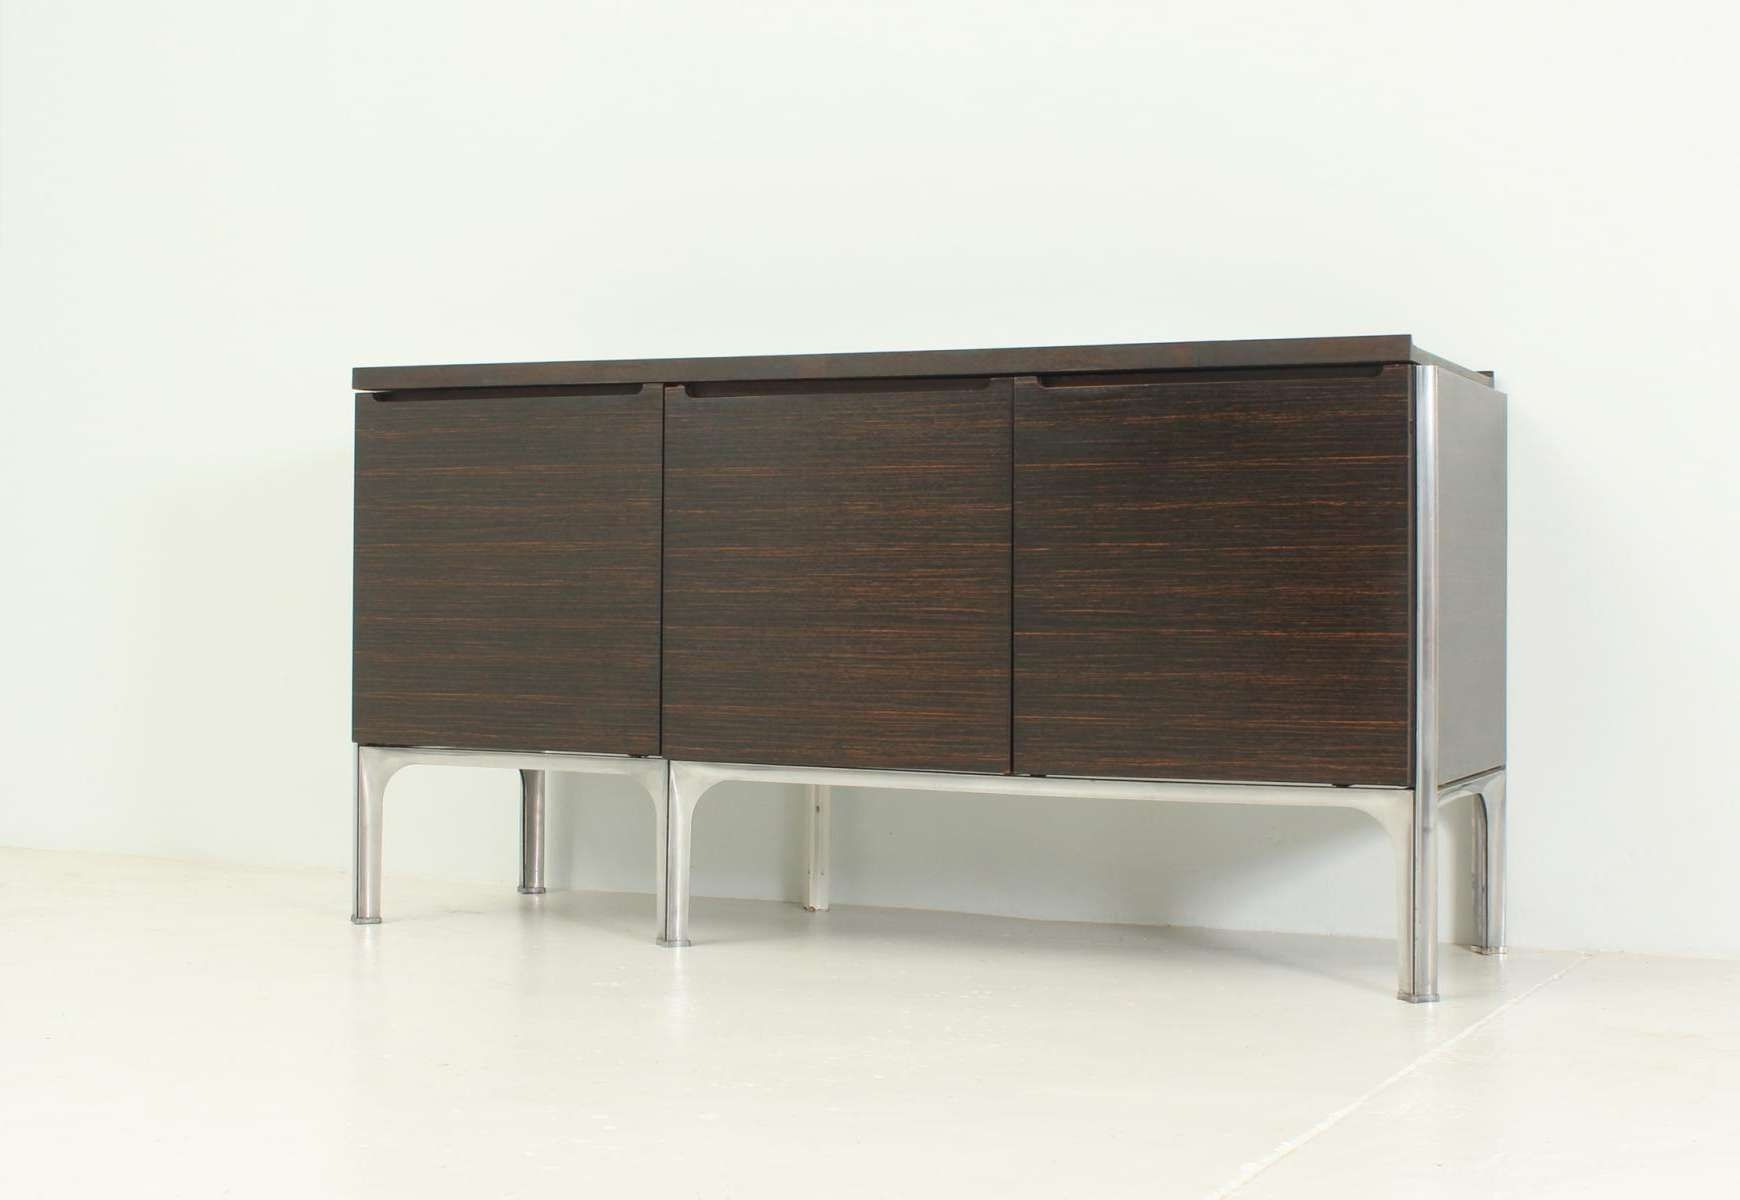 Macassar Ebony Wood Sideboardraymond Loewy For Df 2000 For In Affinity Sideboards (View 10 of 20)